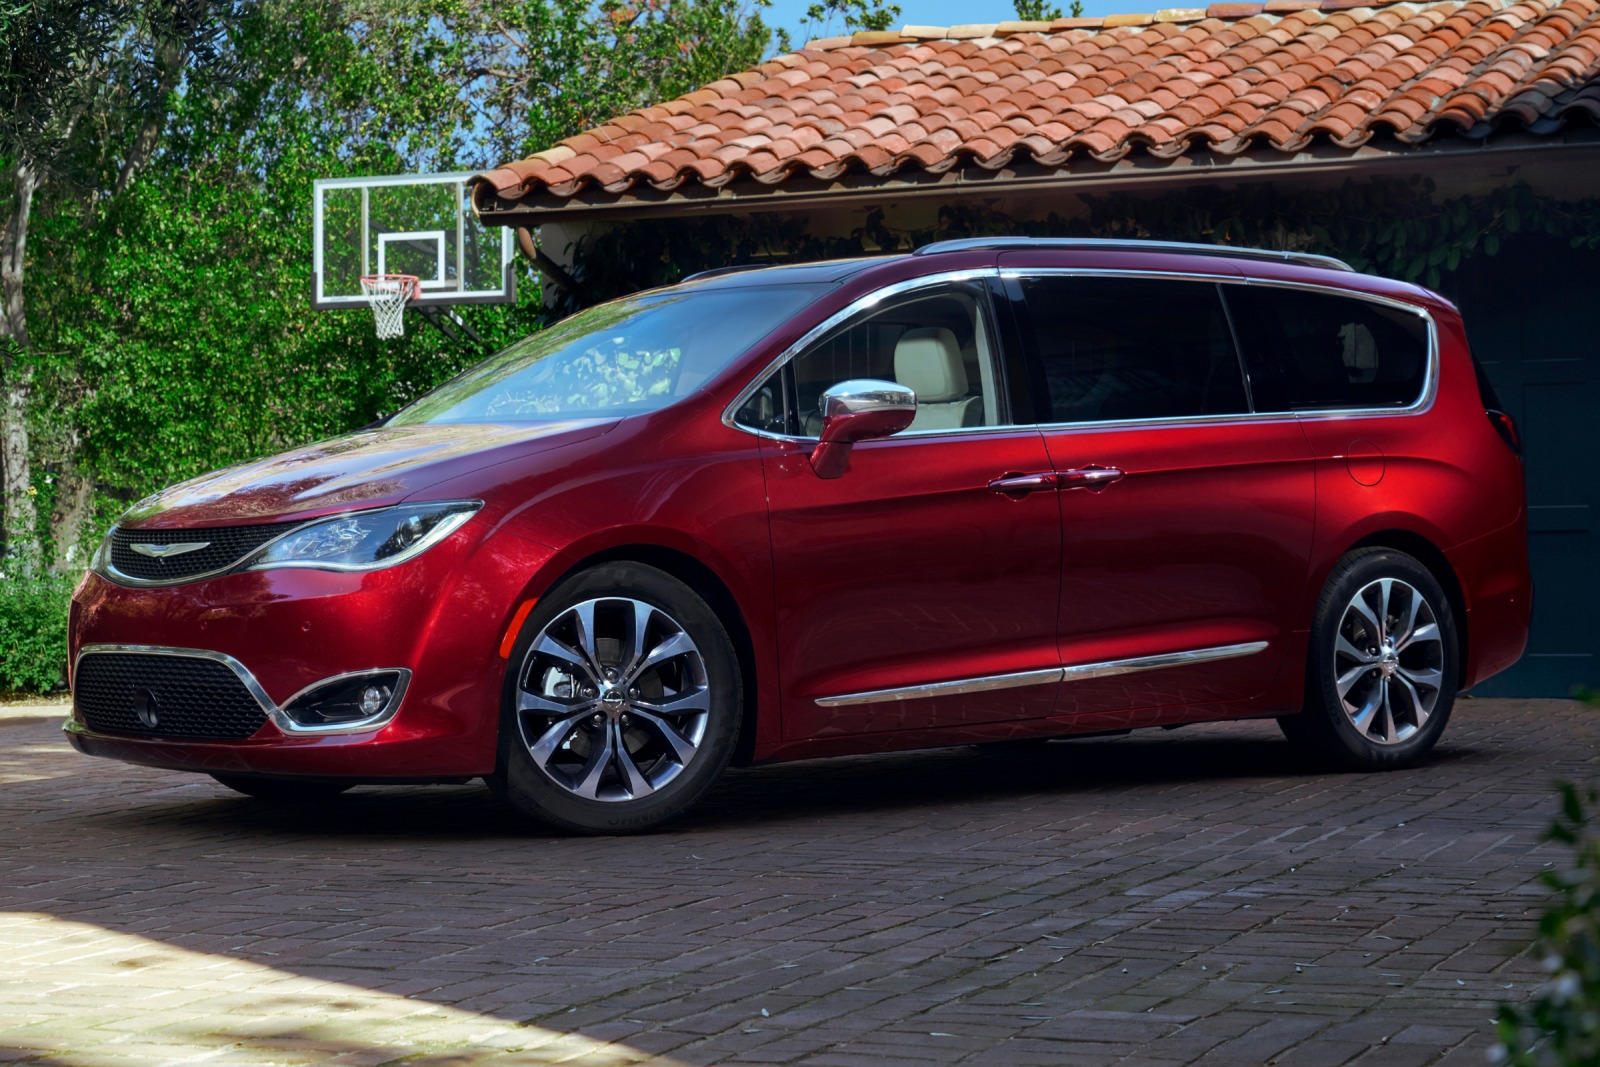 Toyota Sienna 2010-2018 Owners Manual: Power easy access system